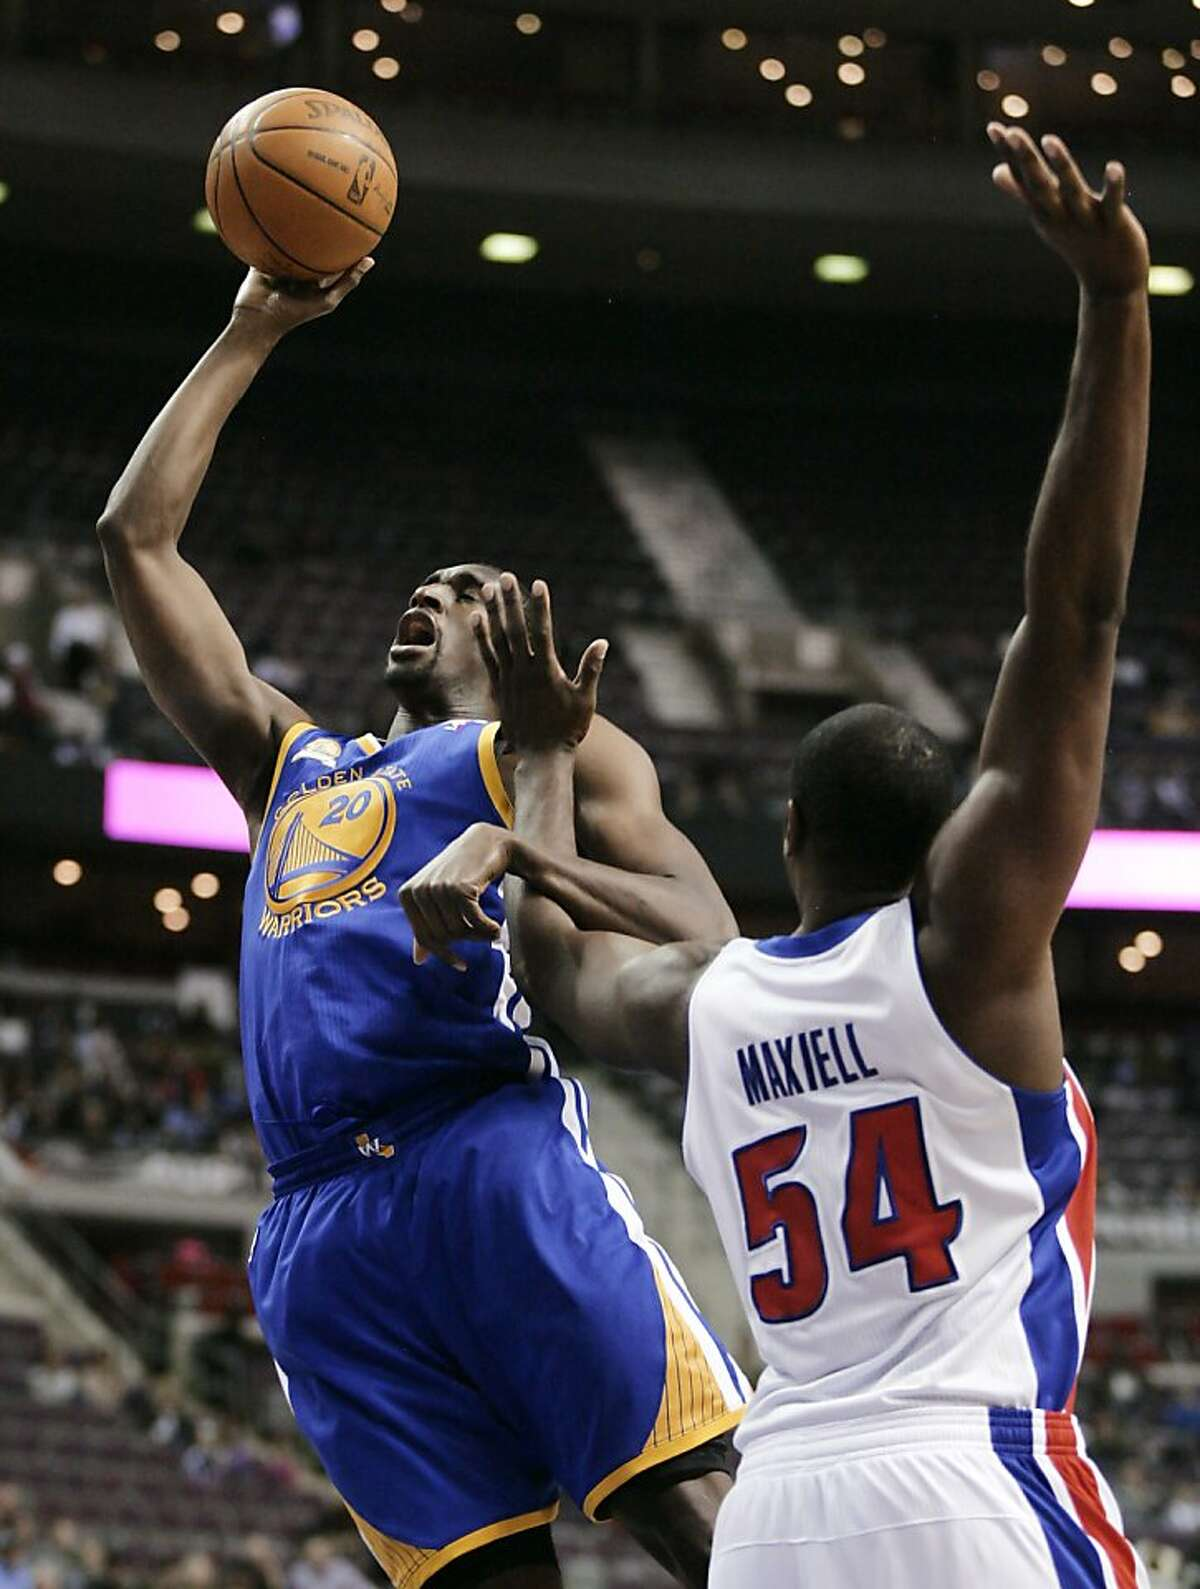 Golden State Warriors' Ekpe Udoh (20) is fouled by Detroit Pistons' Jason Maxiell (54) while taking a shot in the first half of an NBA basketball game Sunday, Jan. 15, 2012, in Auburn Hills, Mich.